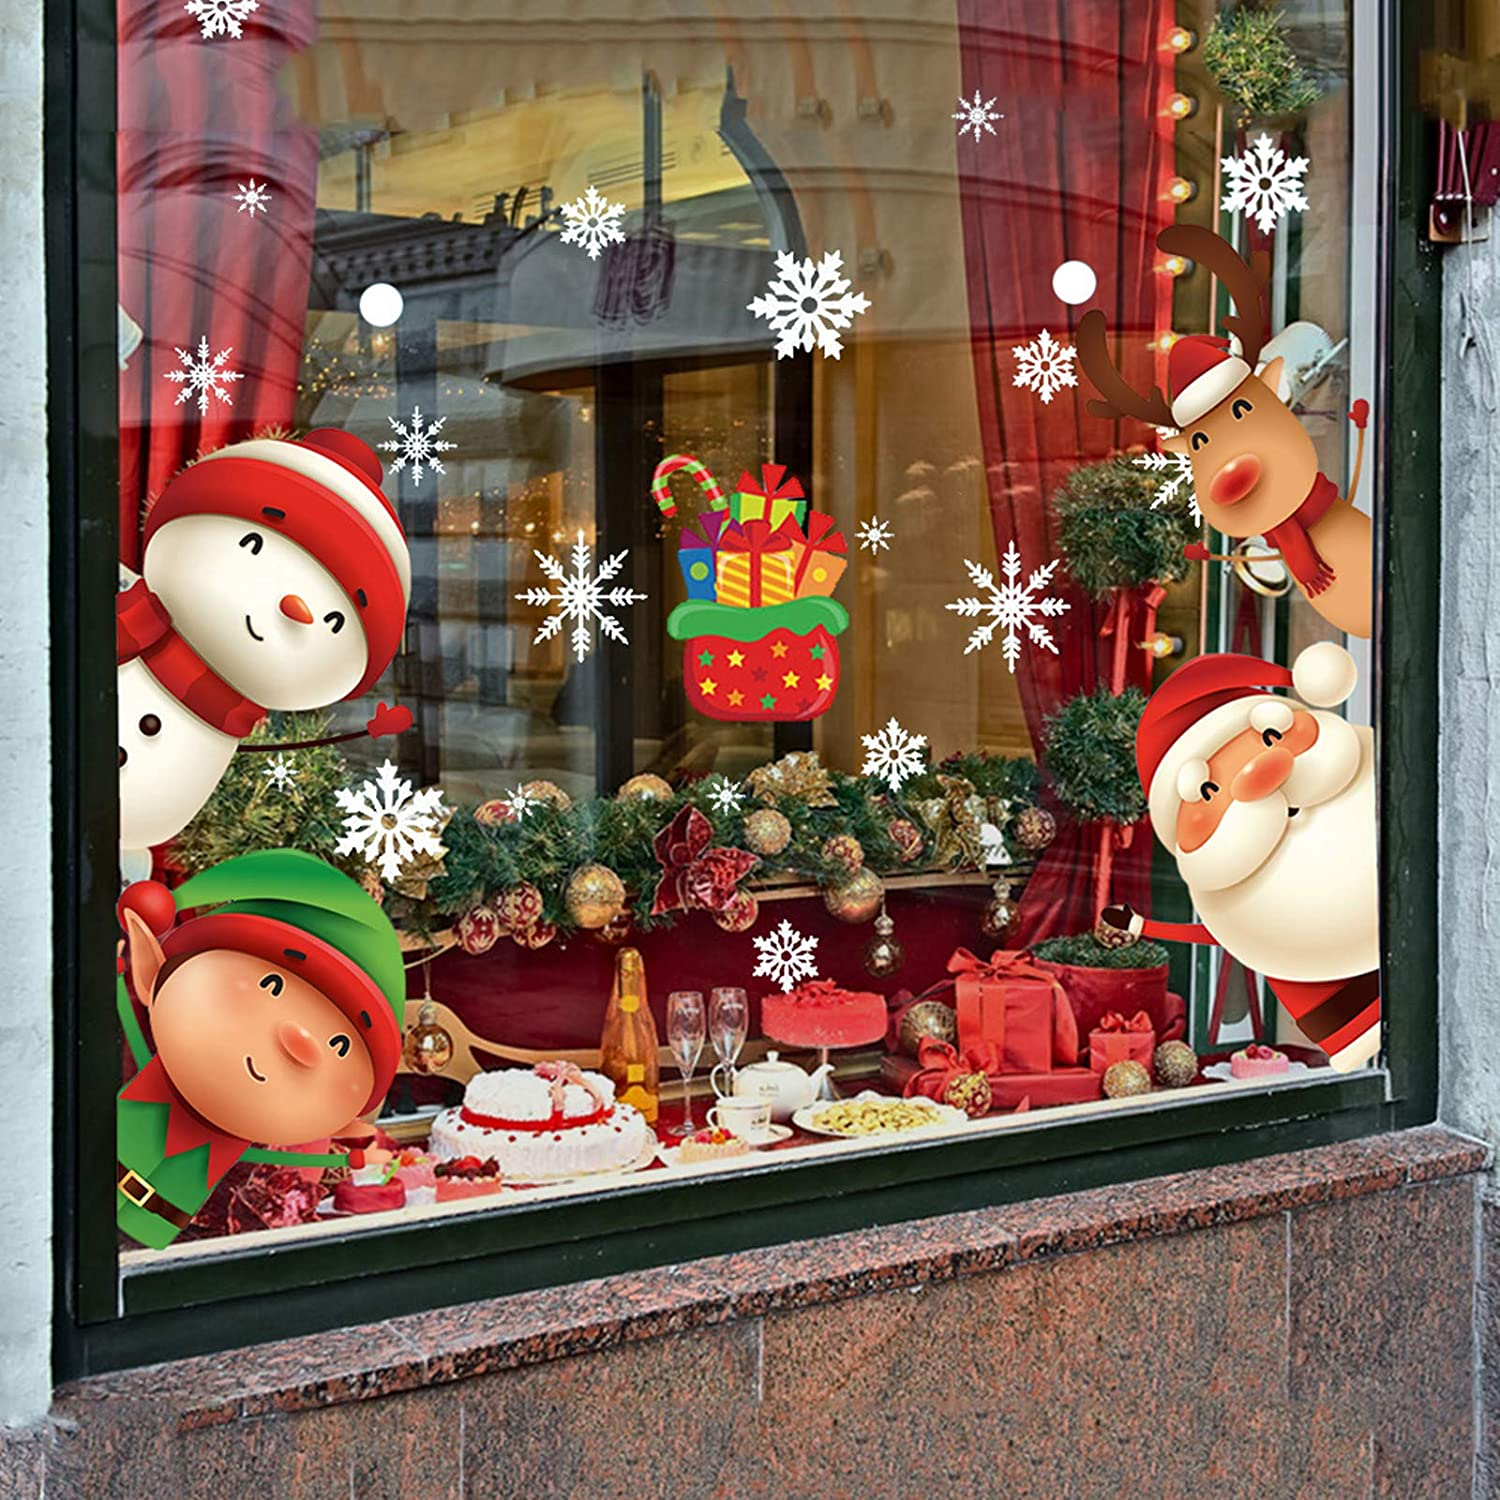 XIMISHOP 82PCS Christmas Snowflake Window for Gl Clings Award-winning store Stickers Max 77% OFF